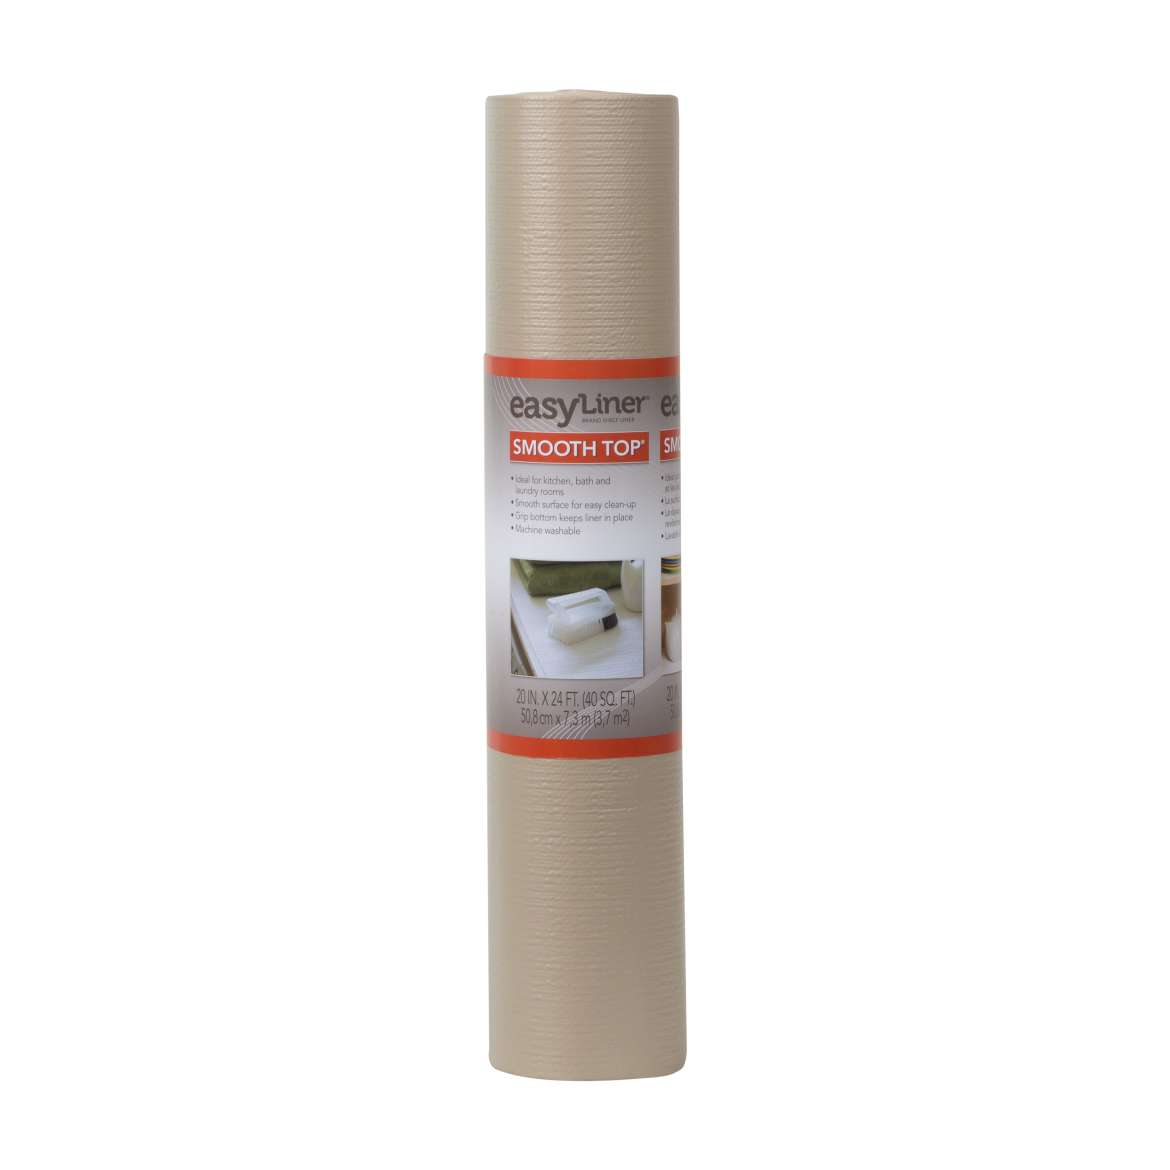 Smooth Top® Easy Liner® Brand Shelf Liner - Taupe, 20 in. x 24 ft. Image